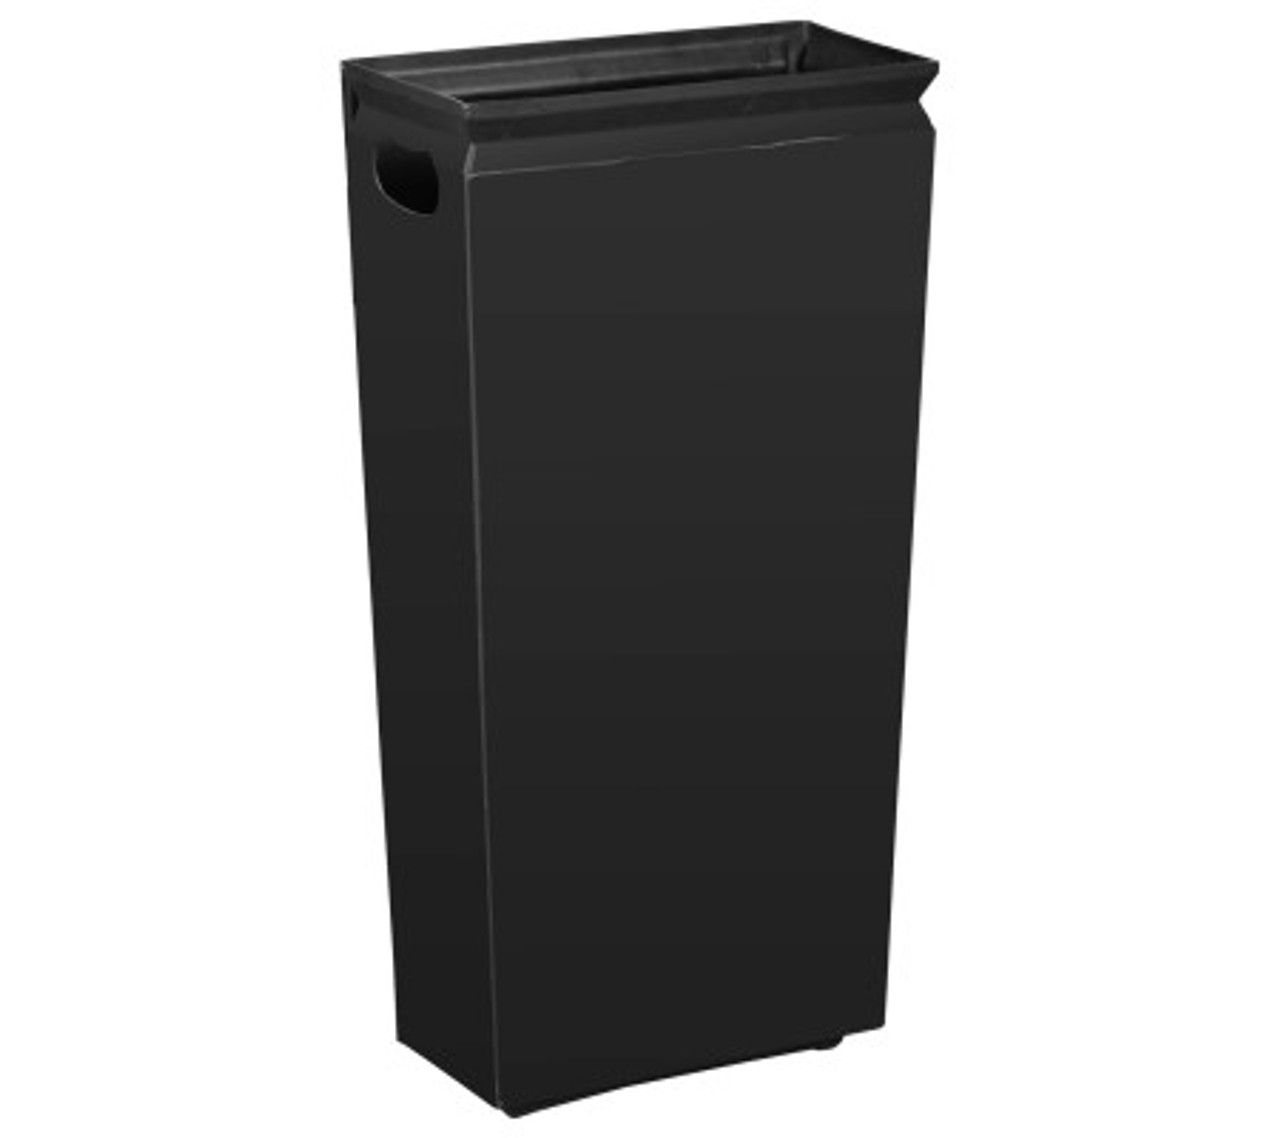 Includes x2, 17 Gallon Liners for Combo Unit